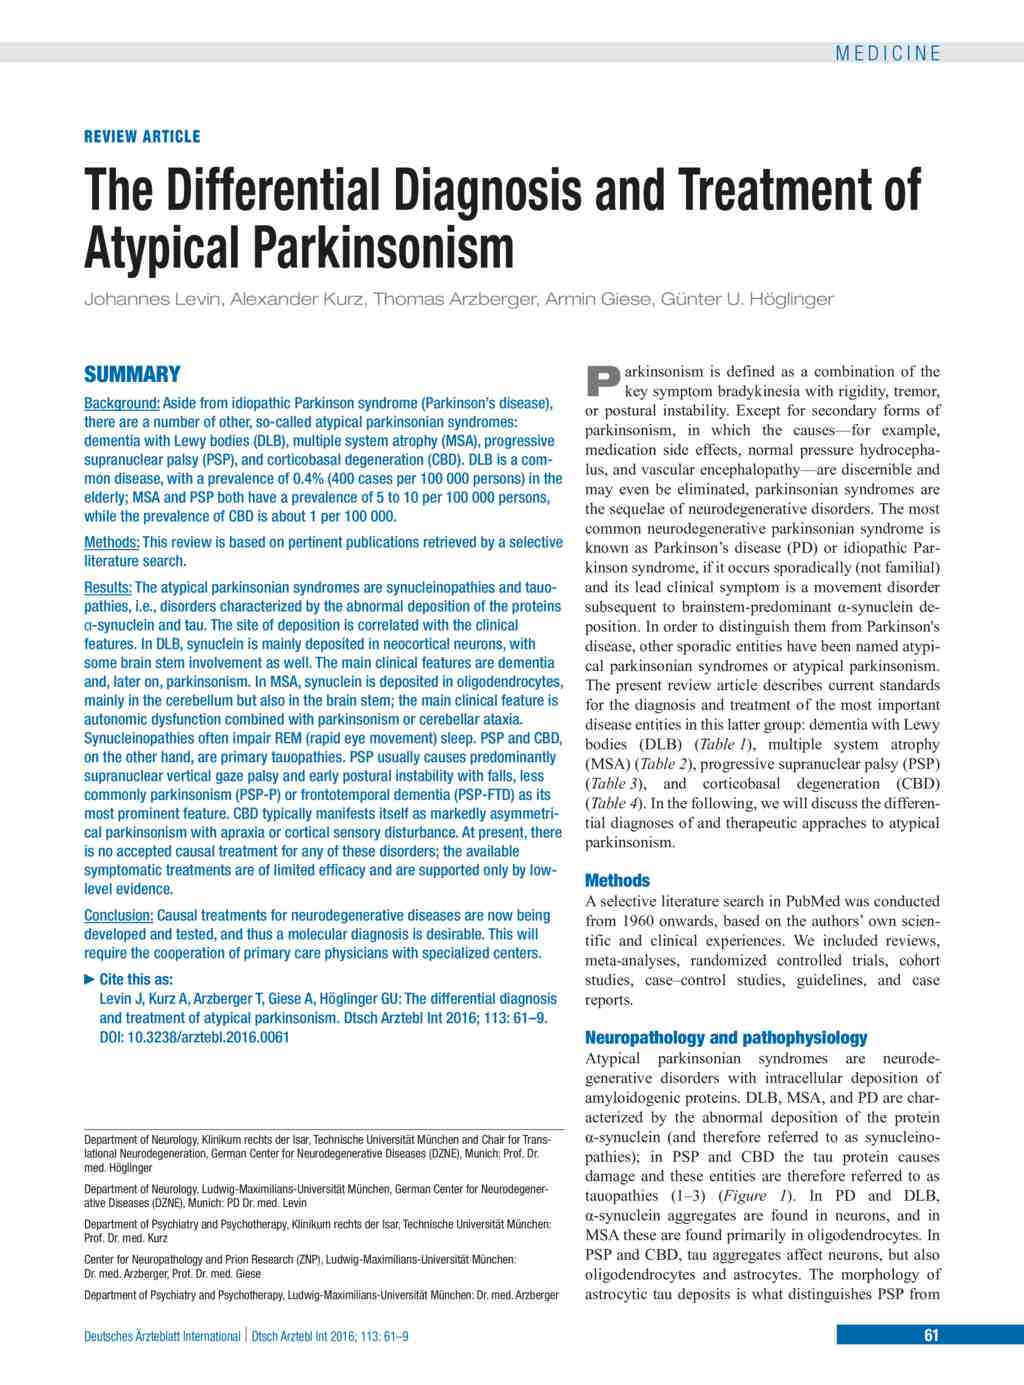 The Differential Diagnosis and Treatment of Atypical Parkinsonism ...